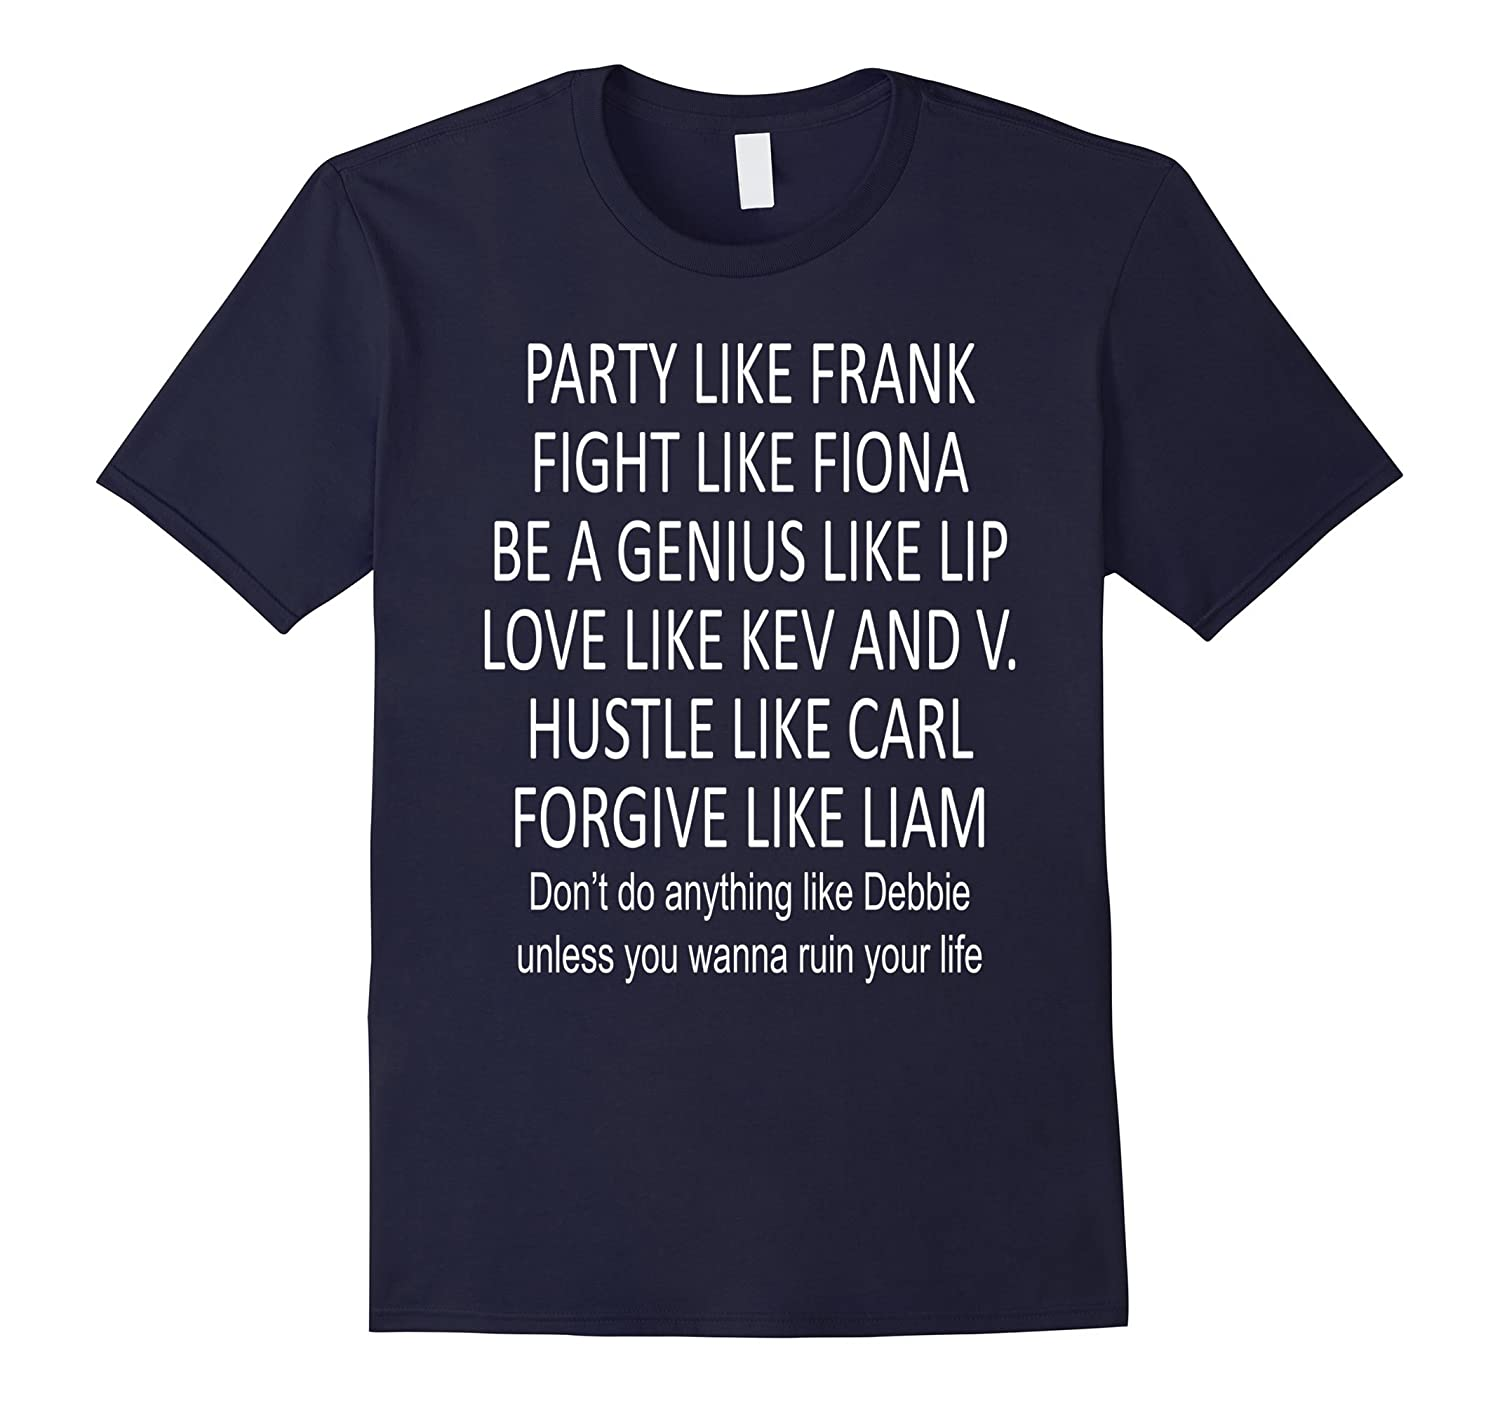 Party like Frank fight like Fiona shirt-FL